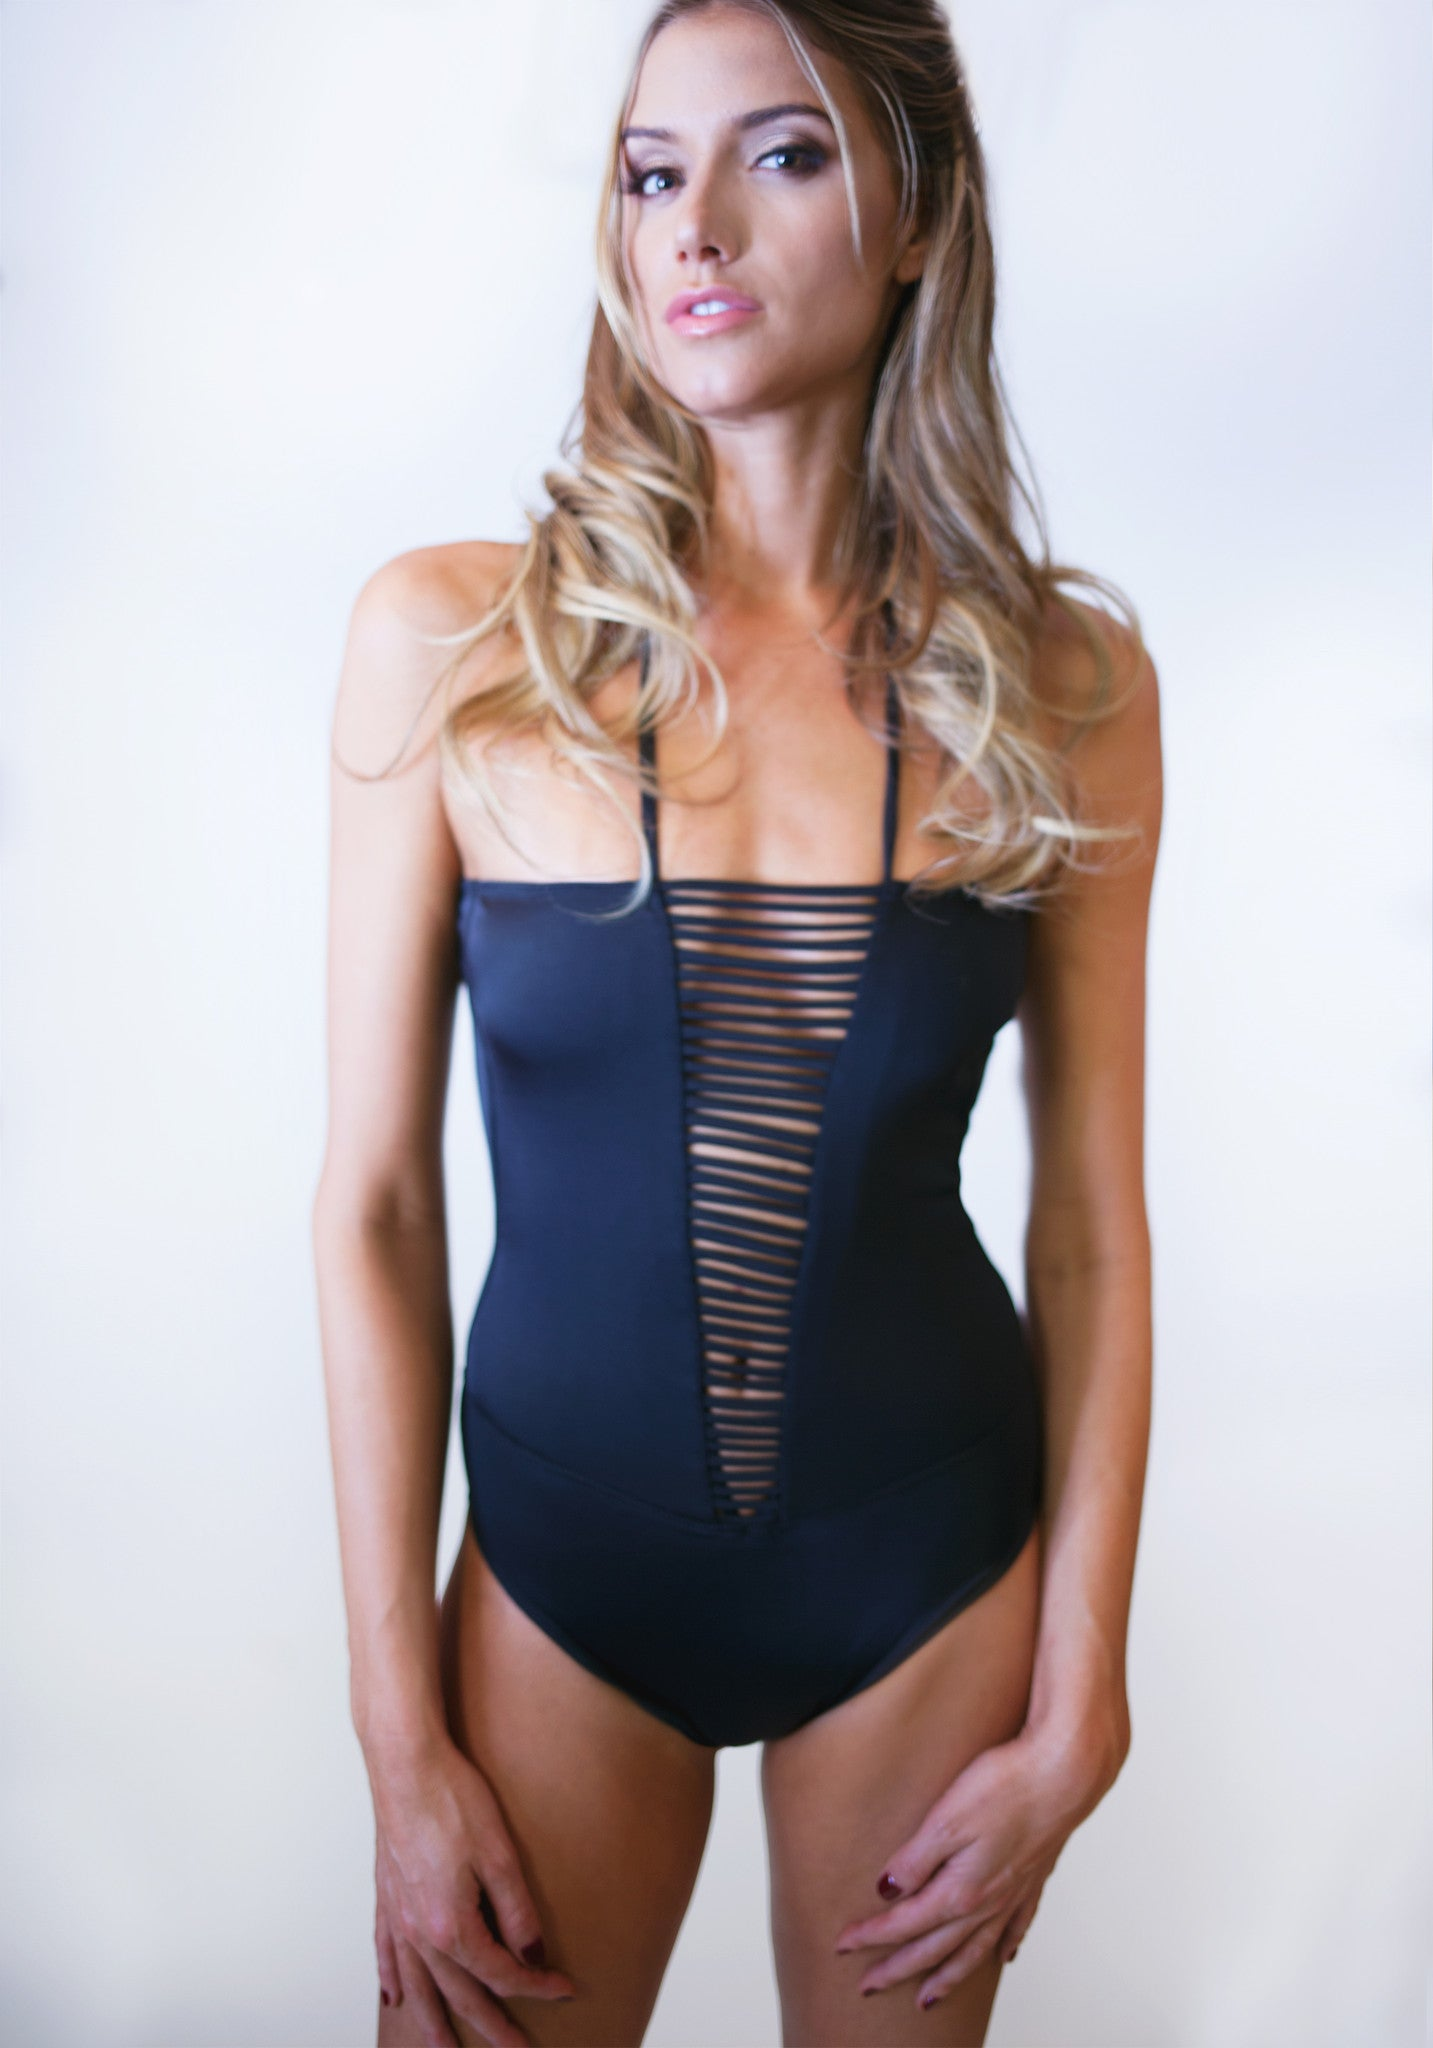 Swimsuit - South Beach One Piece